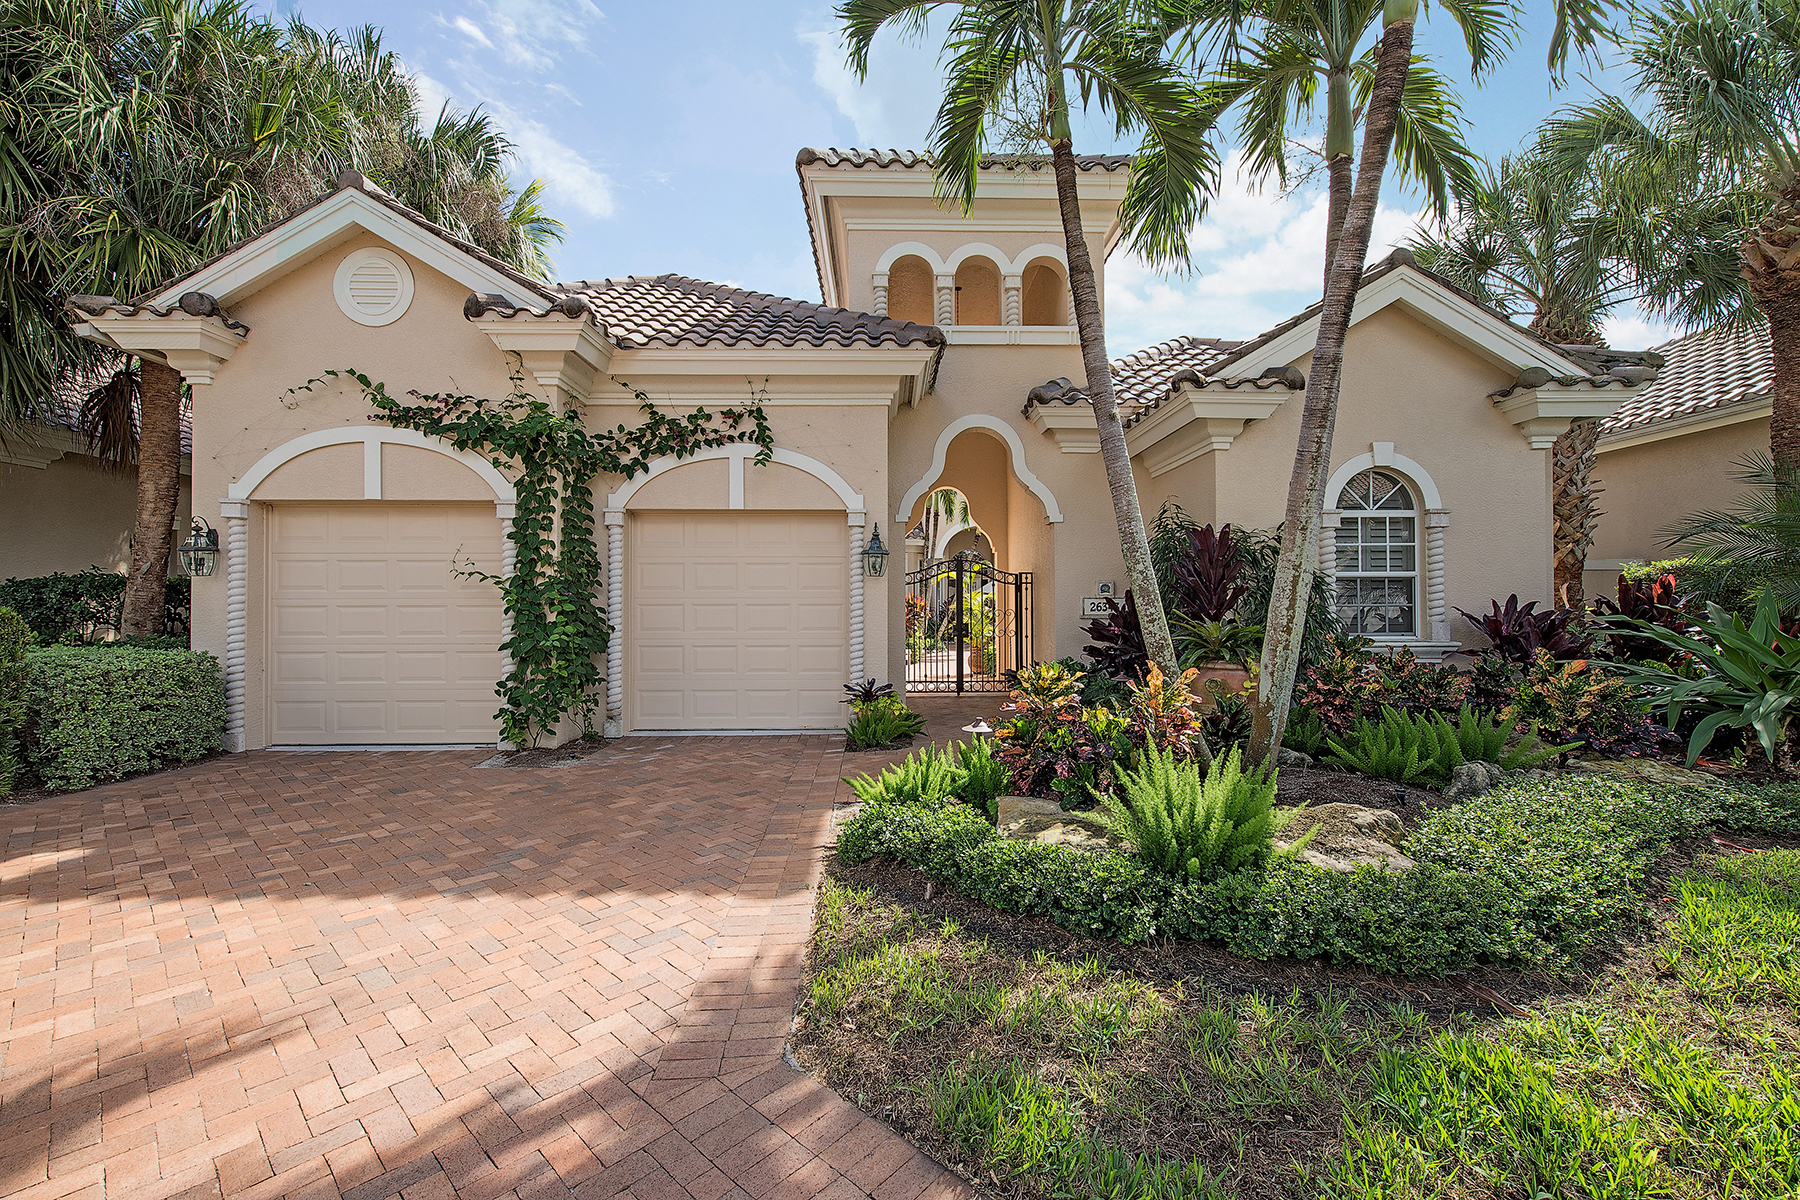 Property For Sale at BONITA BAY - MAHOGANY RIDGE